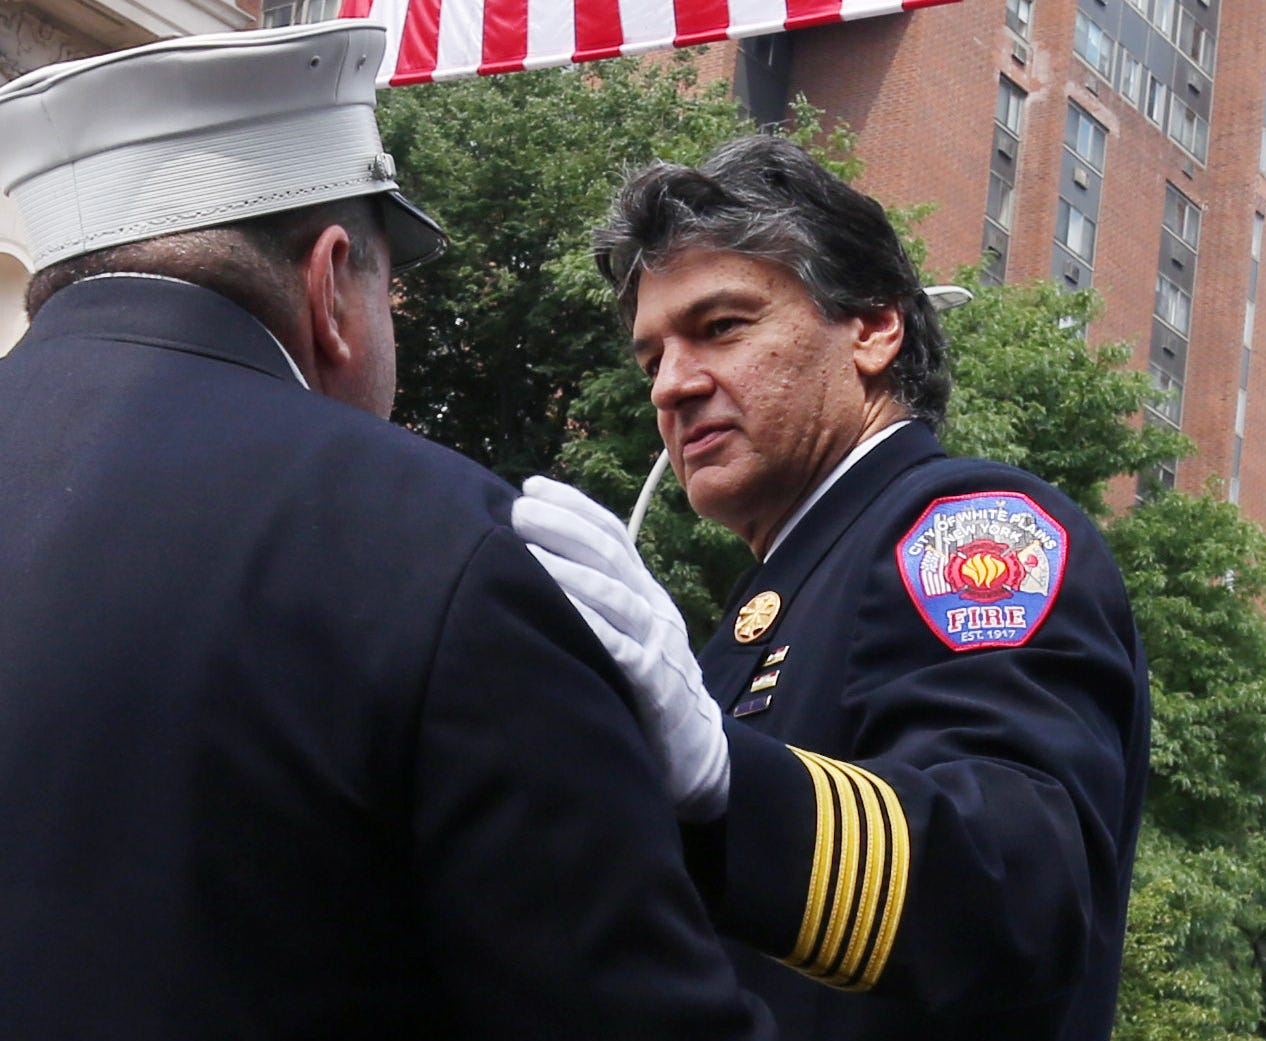 White Plains Fire Department Deputy Chief Edward Ciocca died Friday night of complications from COVID-19. Ciocca was a loving father, a devoted firefighter a true leader and second generation firefighter who served for 35 years, he rose to the rank of Deputy Chief like his father before him. May 2, 2020.